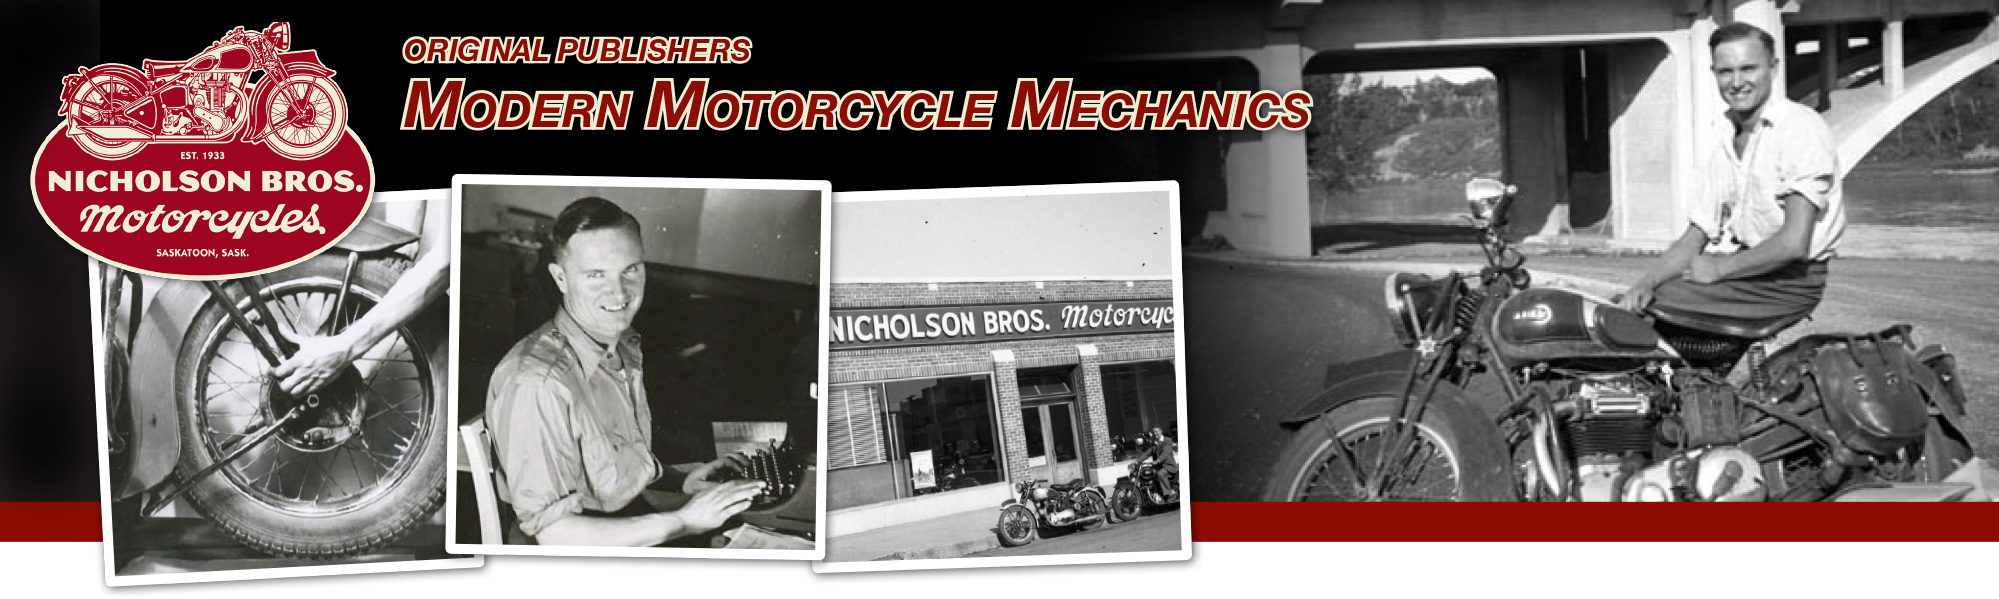 Modern Motorcycle Mechanics